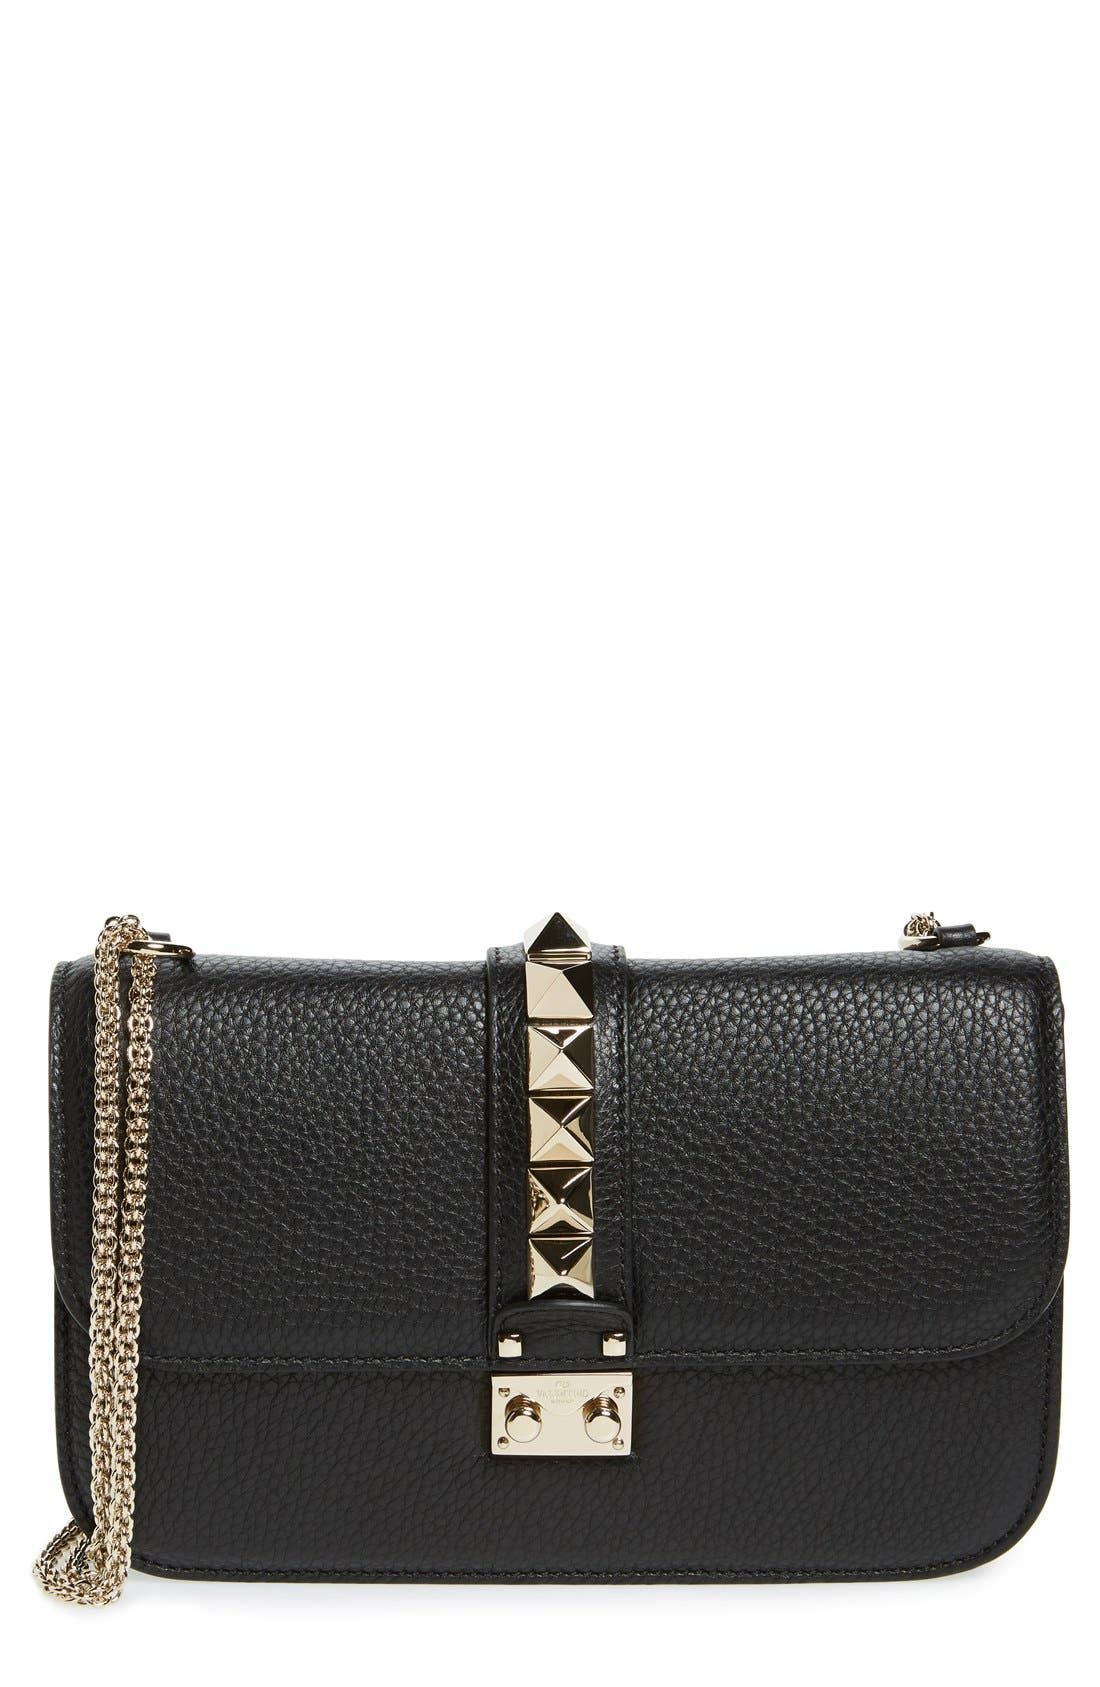 Medium Lock Studded Leather Shoulder Bag,                             Main thumbnail 1, color,                             NERO